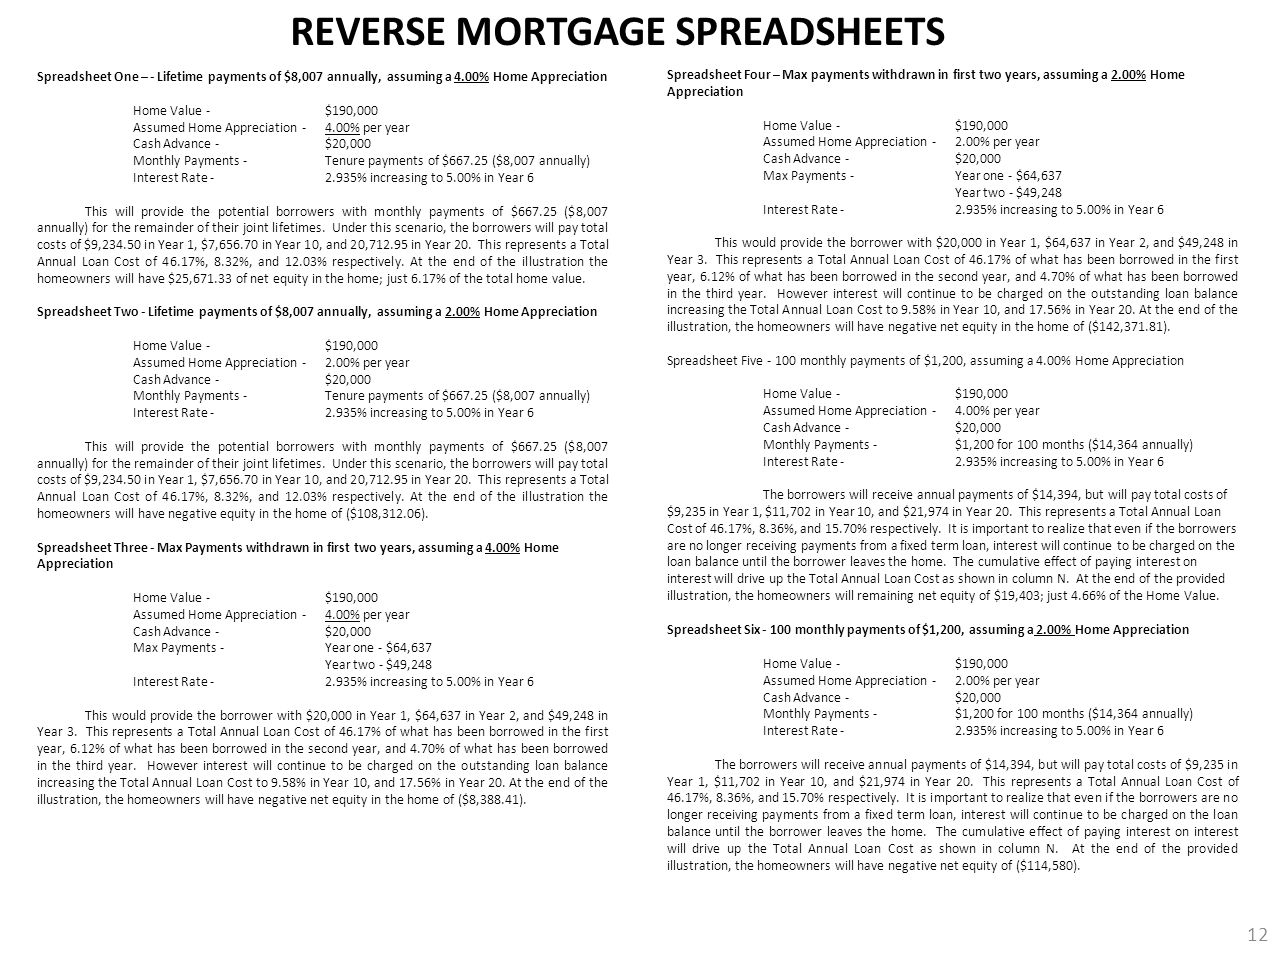 Spreadsheet One – - Lifetime payments of $8,007 annually, assuming a 4.00% Home Appreciation Home Value - $190,000 Assumed Home Appreciation - 4.00% p